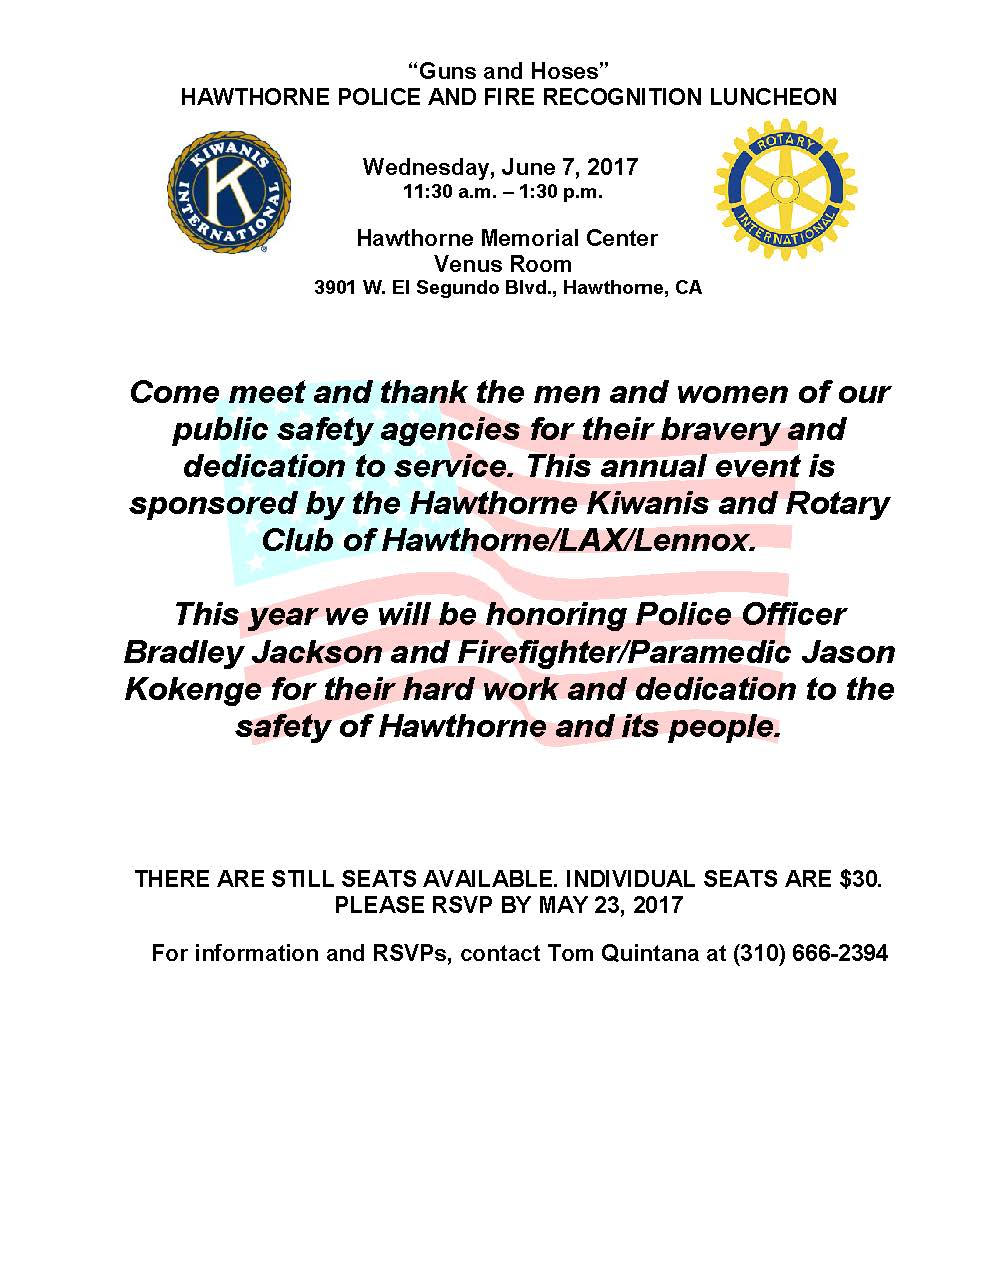 Guns & Hoses Hawthorne Police and Fire Recognition Luncheon